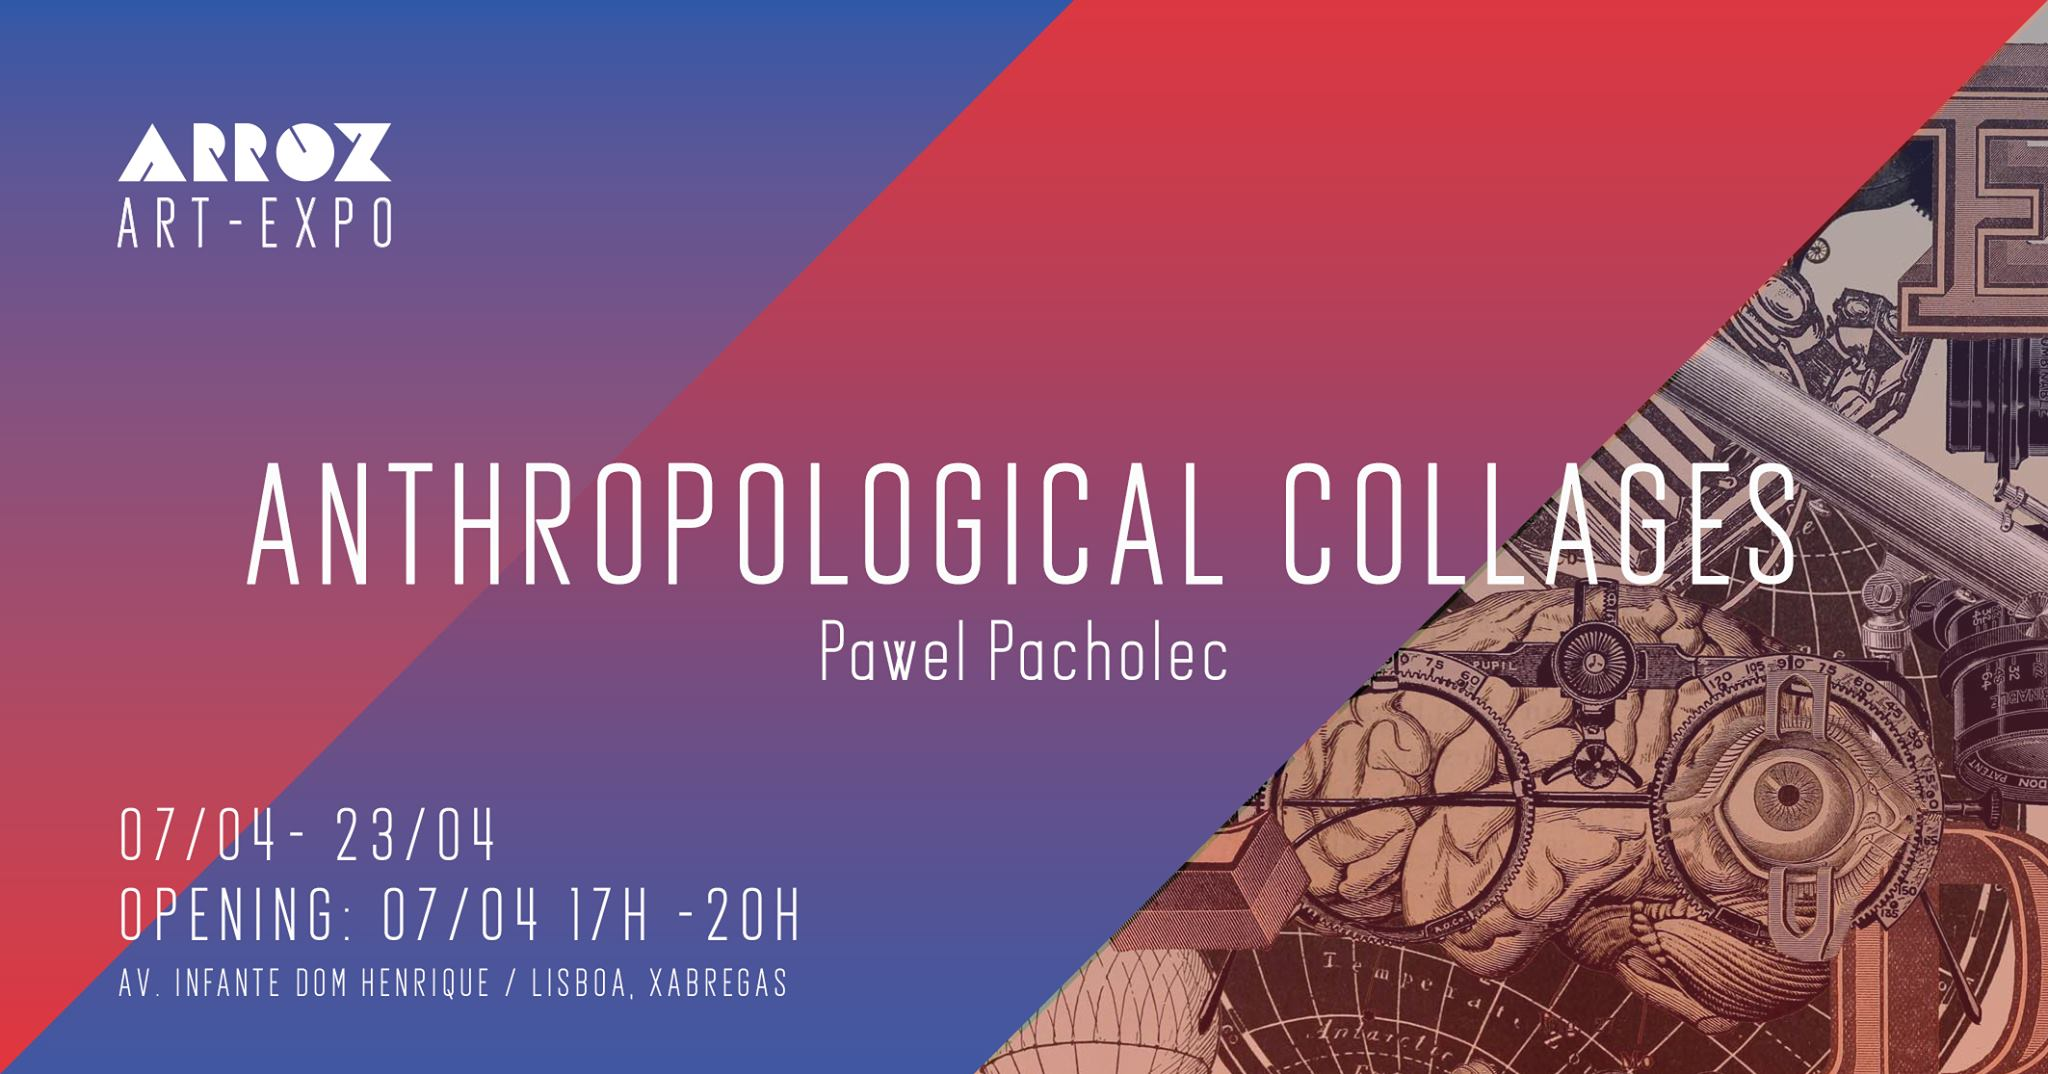 Arroz Expo: Anthropological Collages